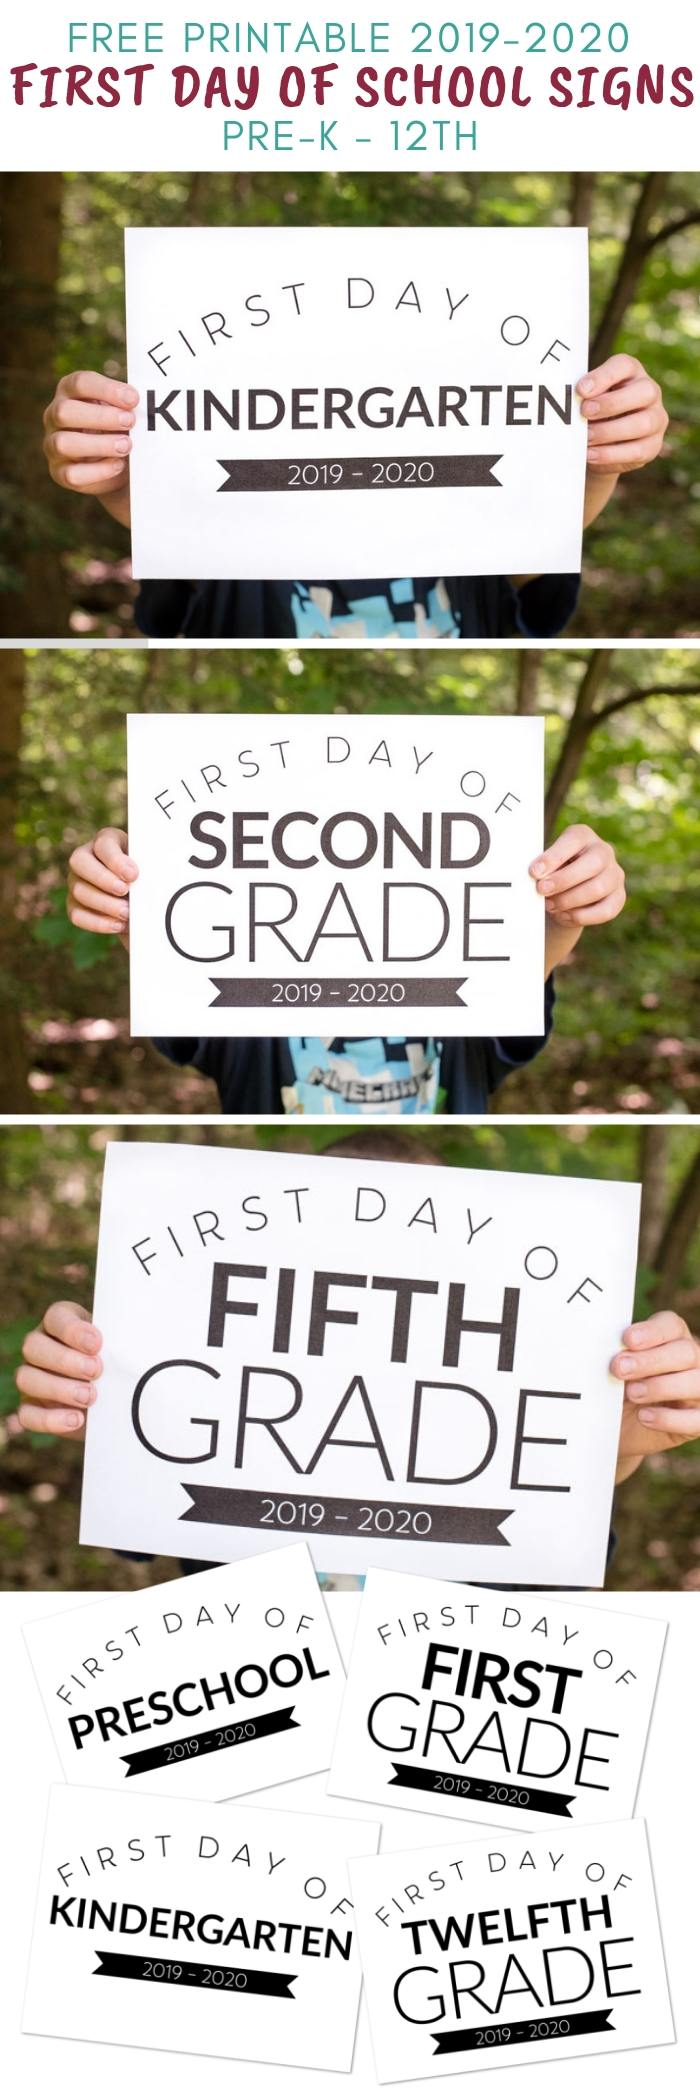 photograph about First Day of Pre K Sign Printable identify Free of charge Printable Initially Working day of Higher education Signs and symptoms for All Grades